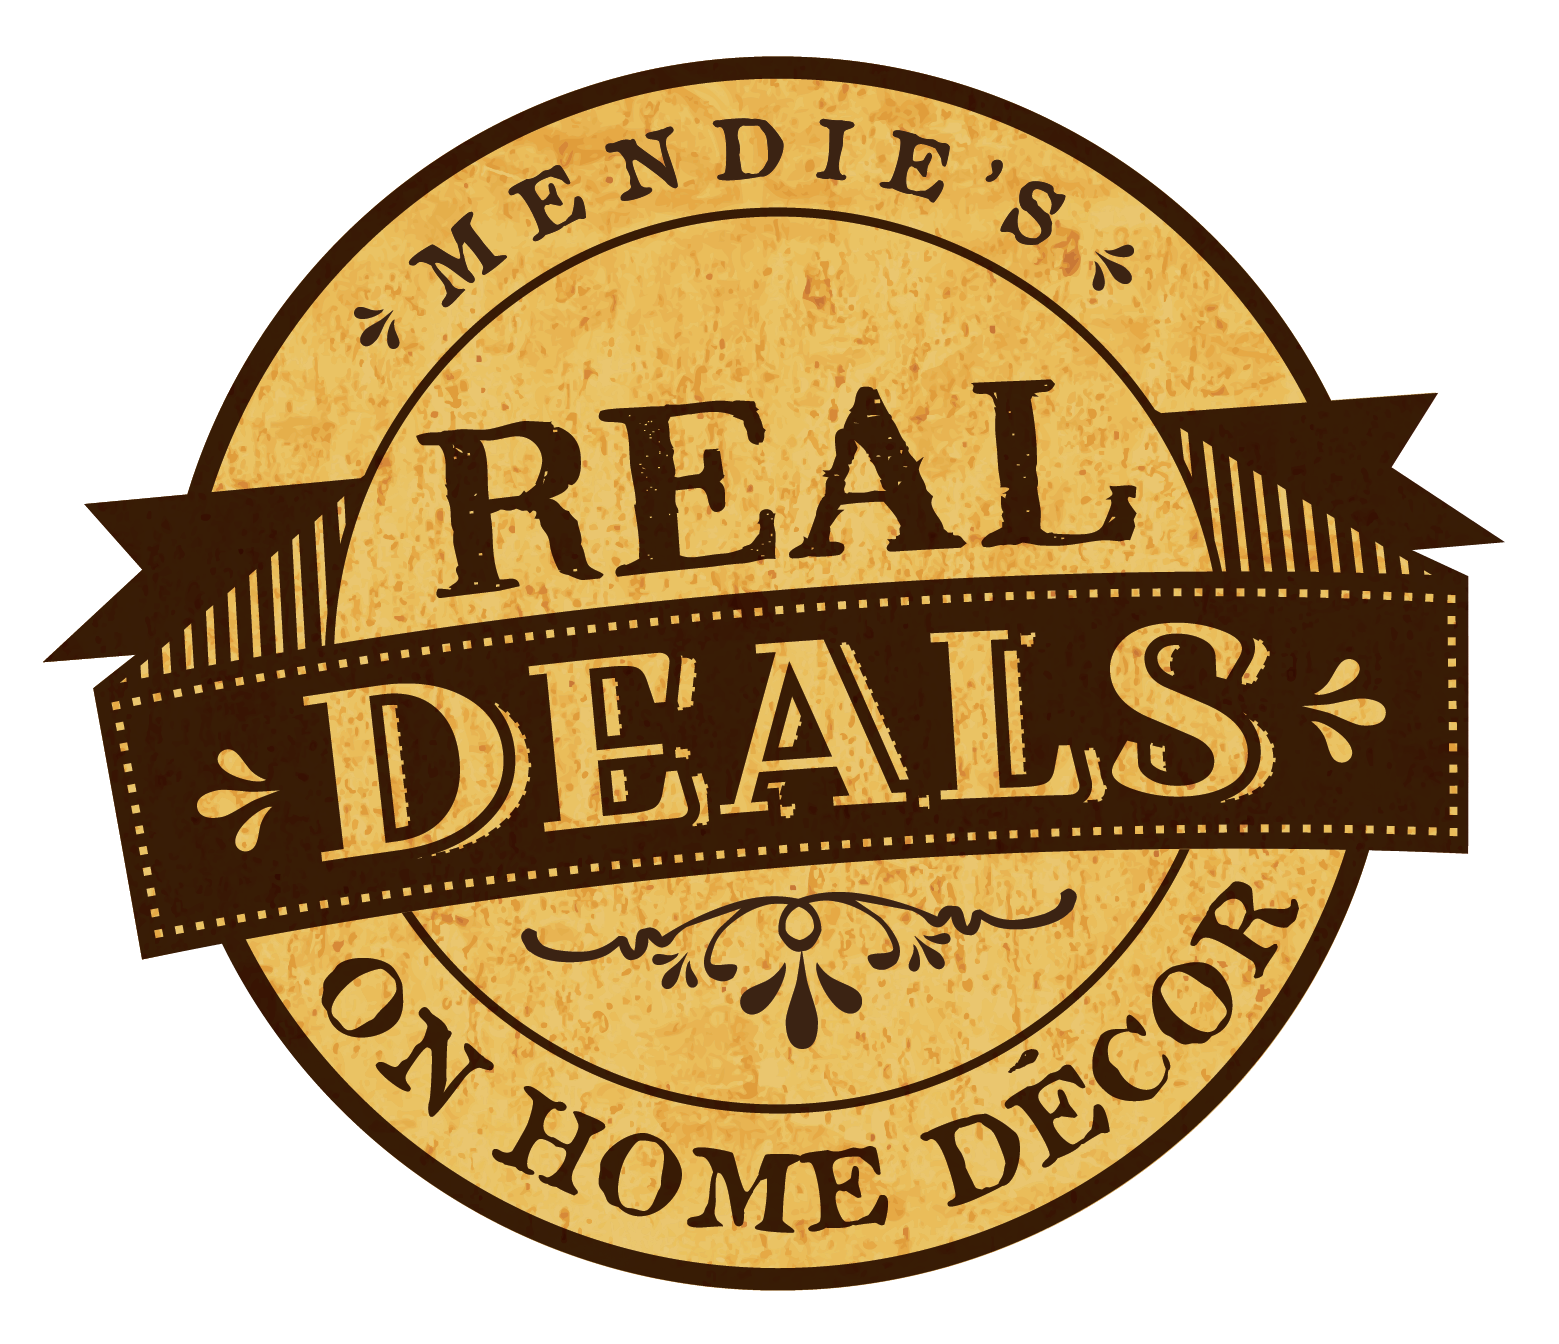 Real Deals on Home Decor, Farr West, Utah Ogden